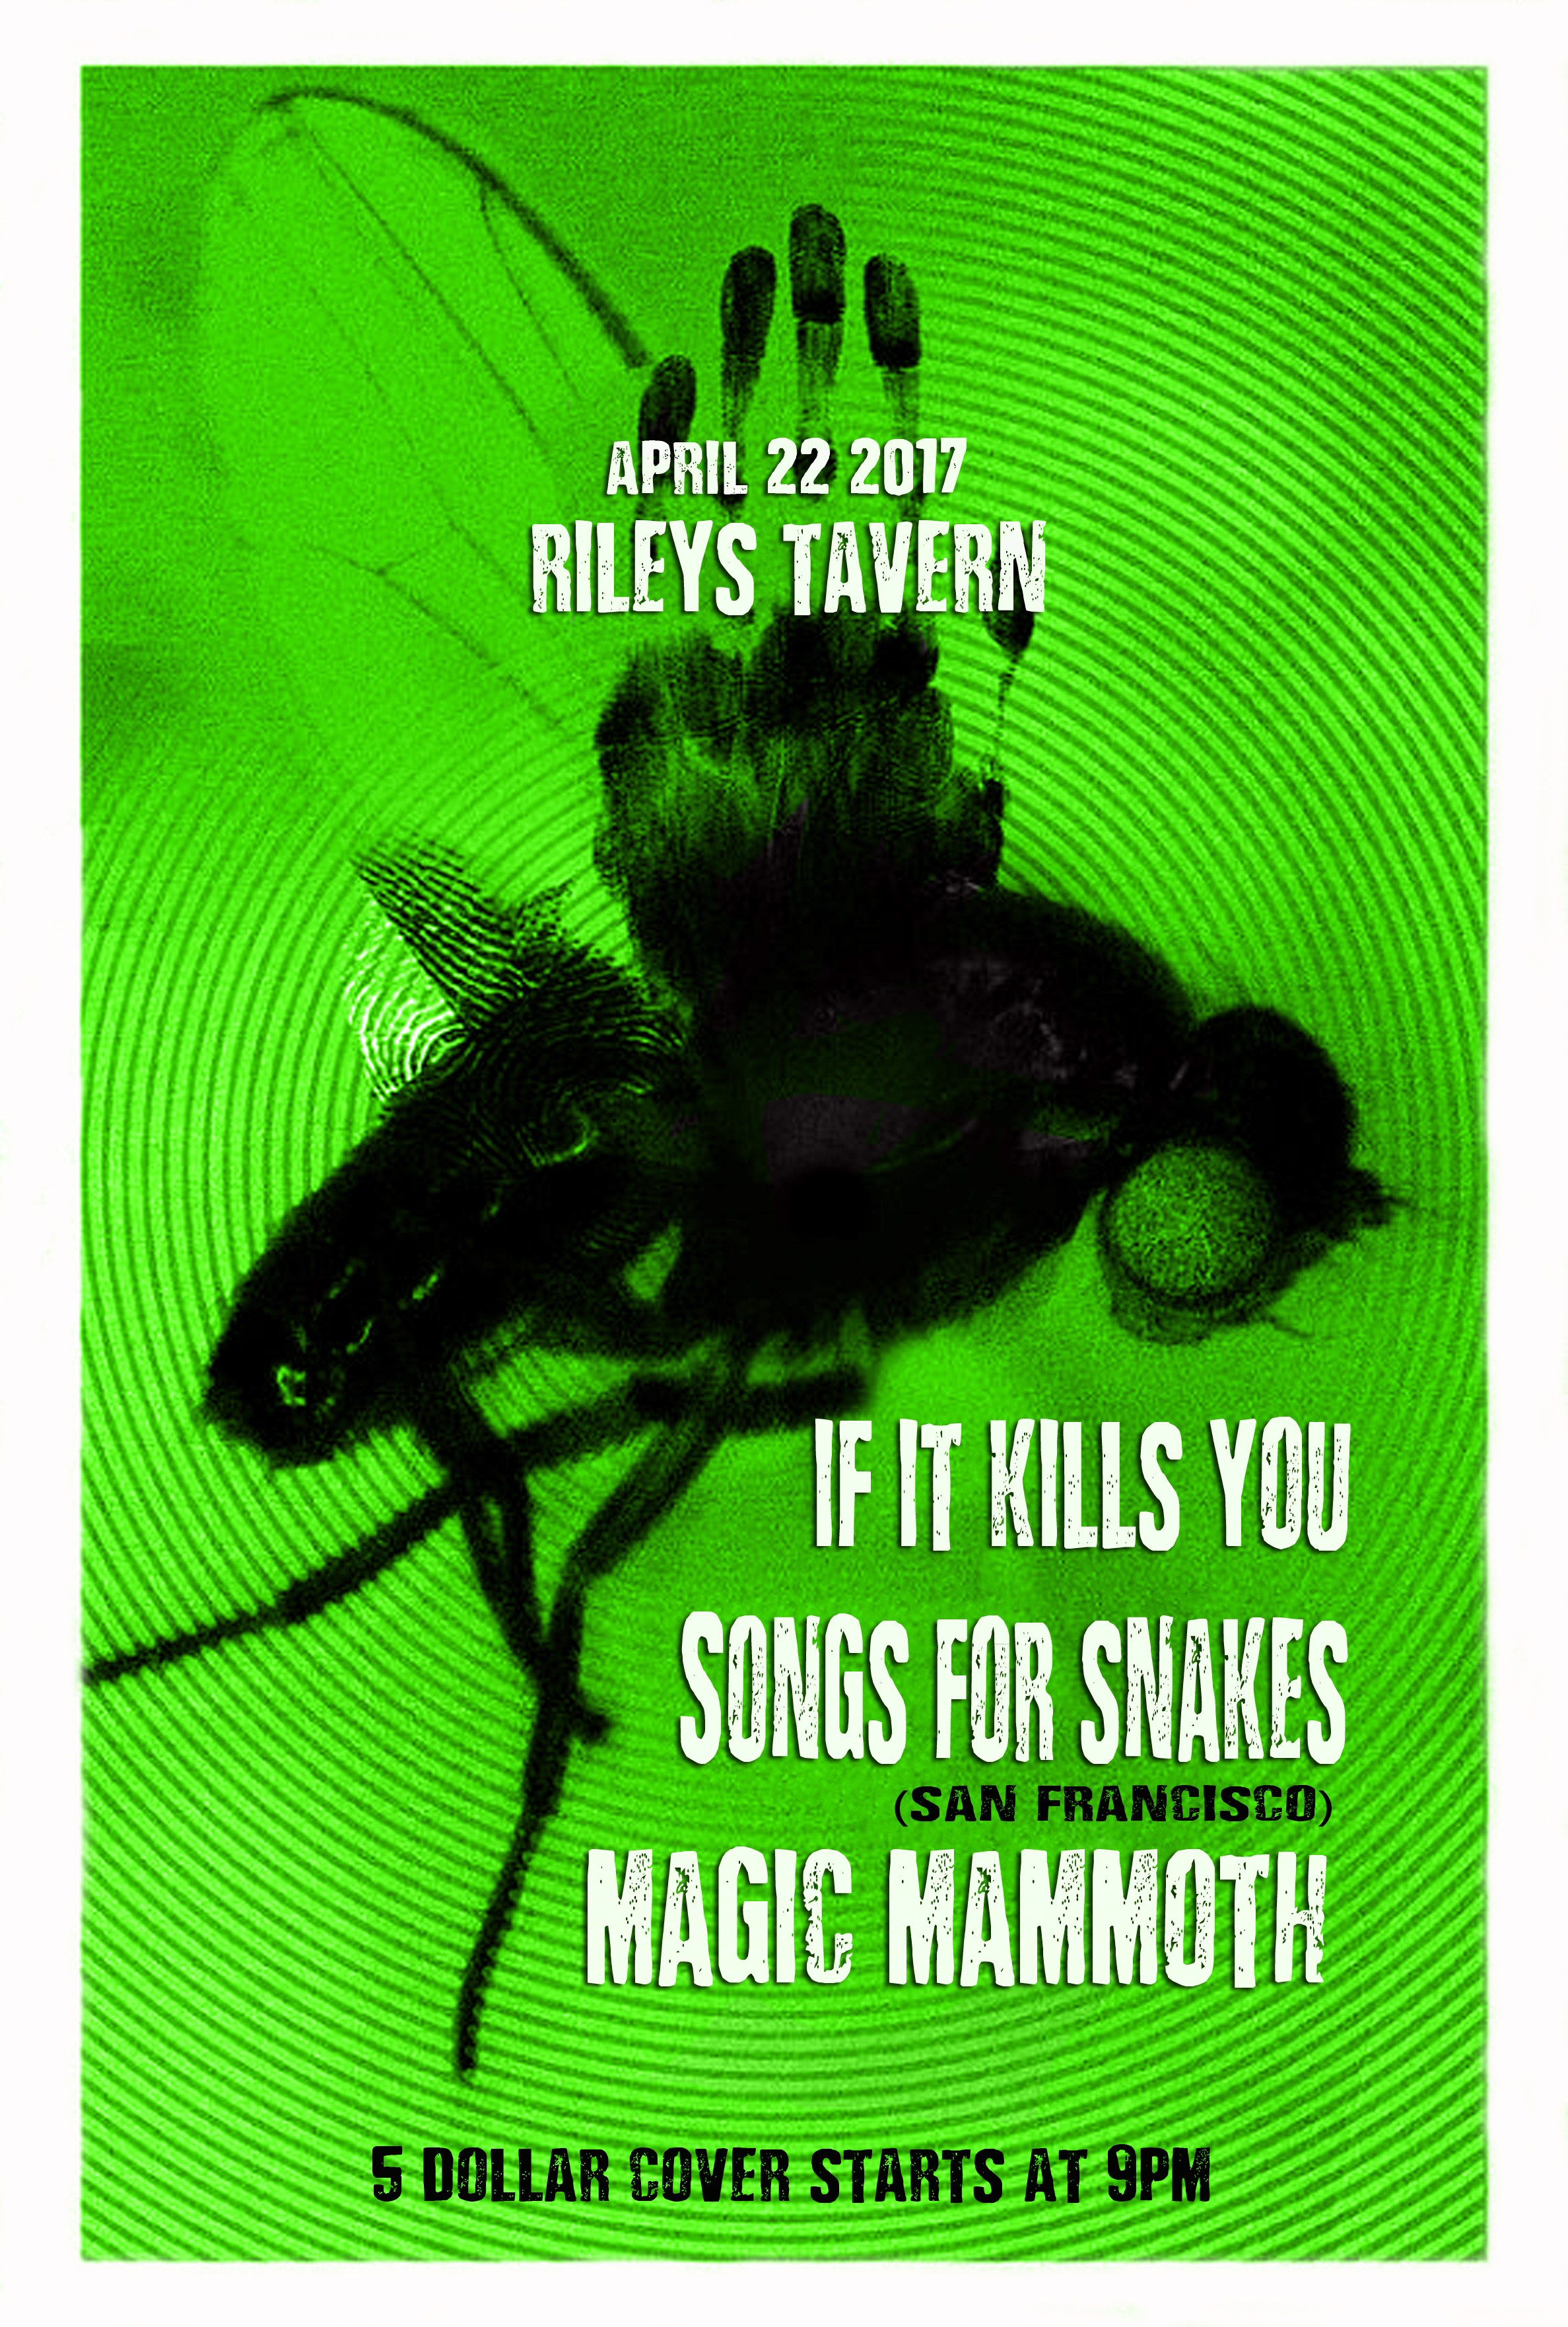 4.22.17 - Songs for Snakes from San Francisco, Magic Mammoth, and If It Kills You. Starts at 9 p.m. 21 and over with a 5 dollar cover.